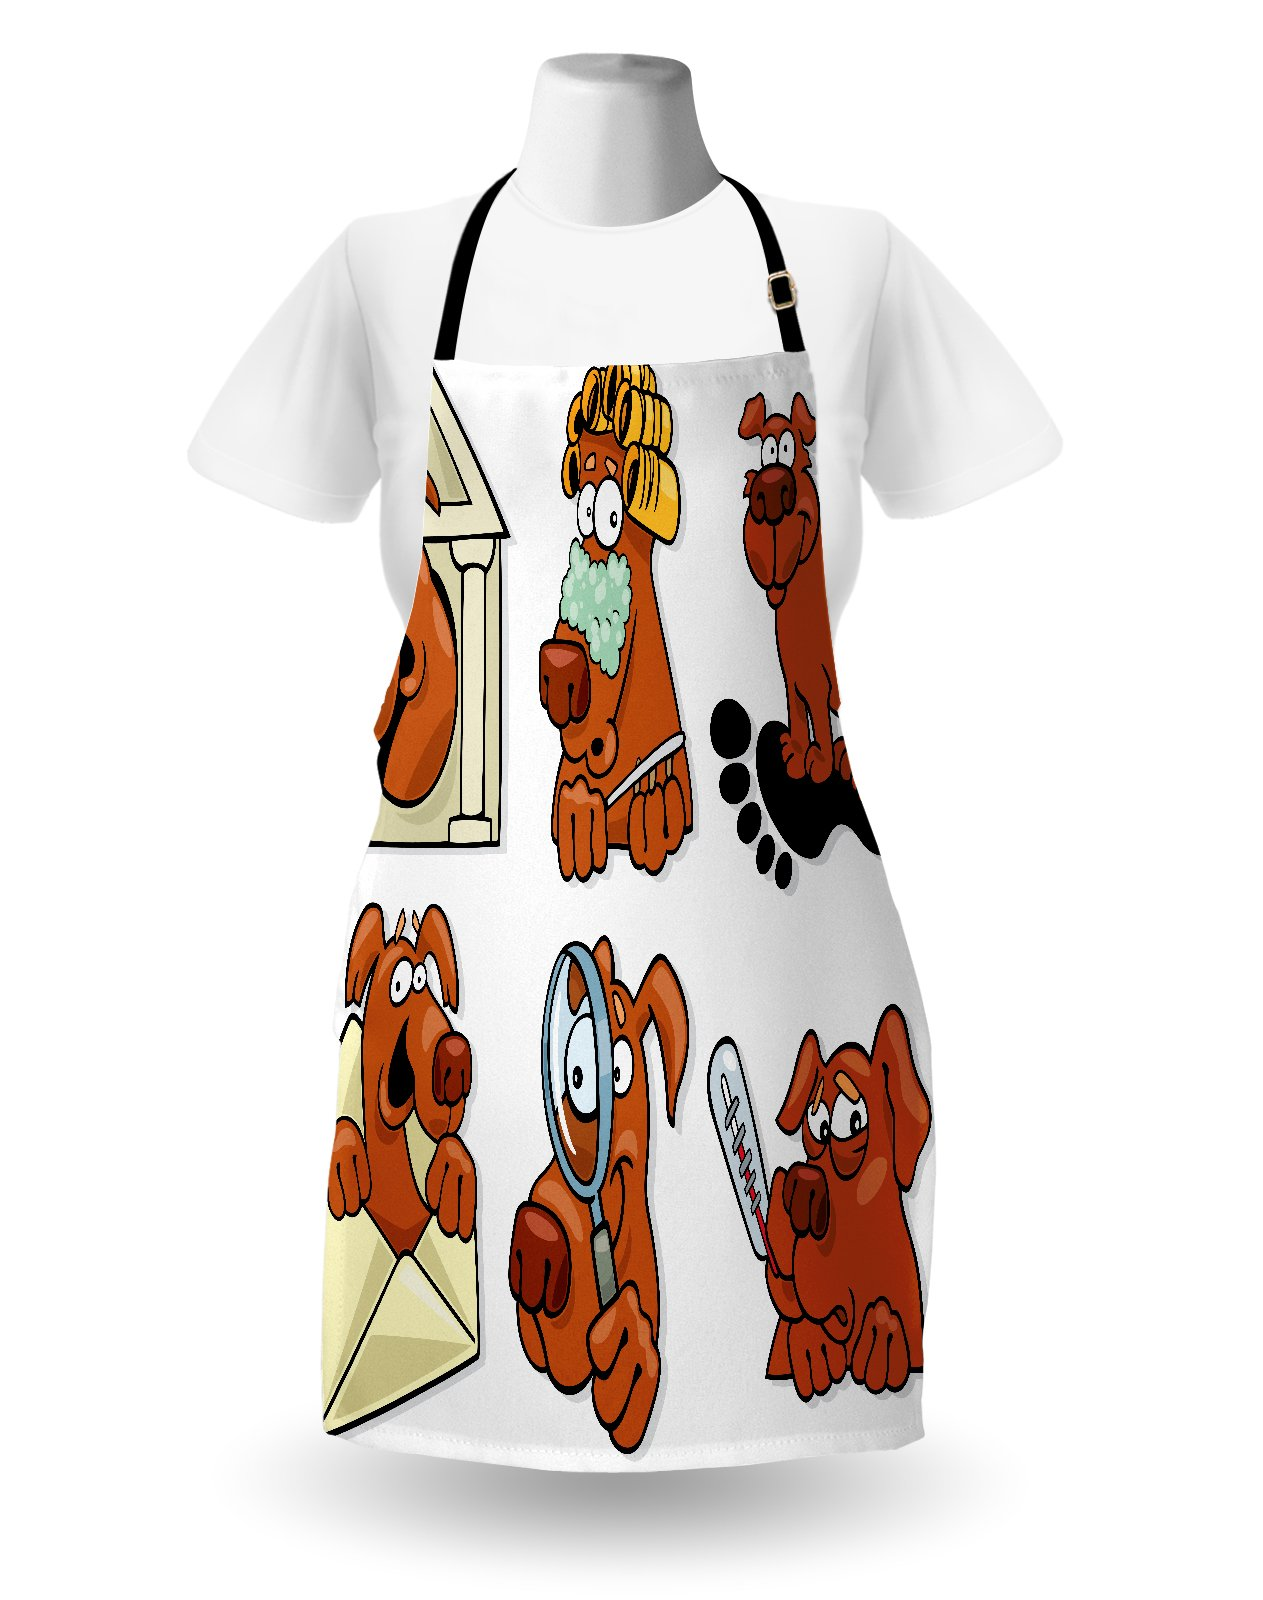 Lunarable Dog Lover Apron, Dog Beauty Spa Toothy Smiling Sick Cheerful Looking Magnifying Action, Unisex Kitchen Bib Apron with Adjustable Neck for Cooking Baking Gardening, Cinnamon Coconut White by Lunarable (Image #2)